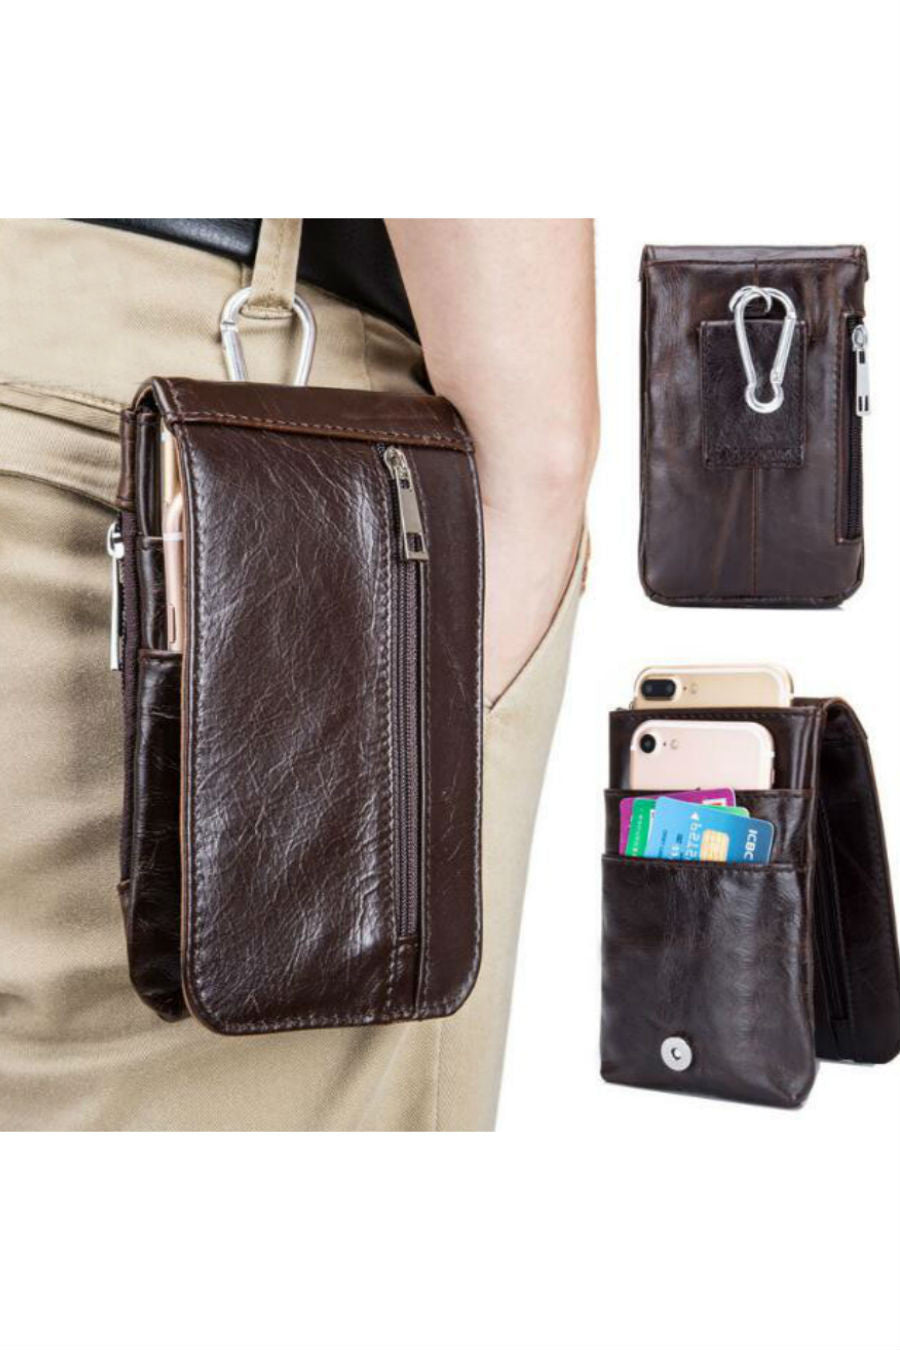 Men's Fanny Pack Cellphone Bag